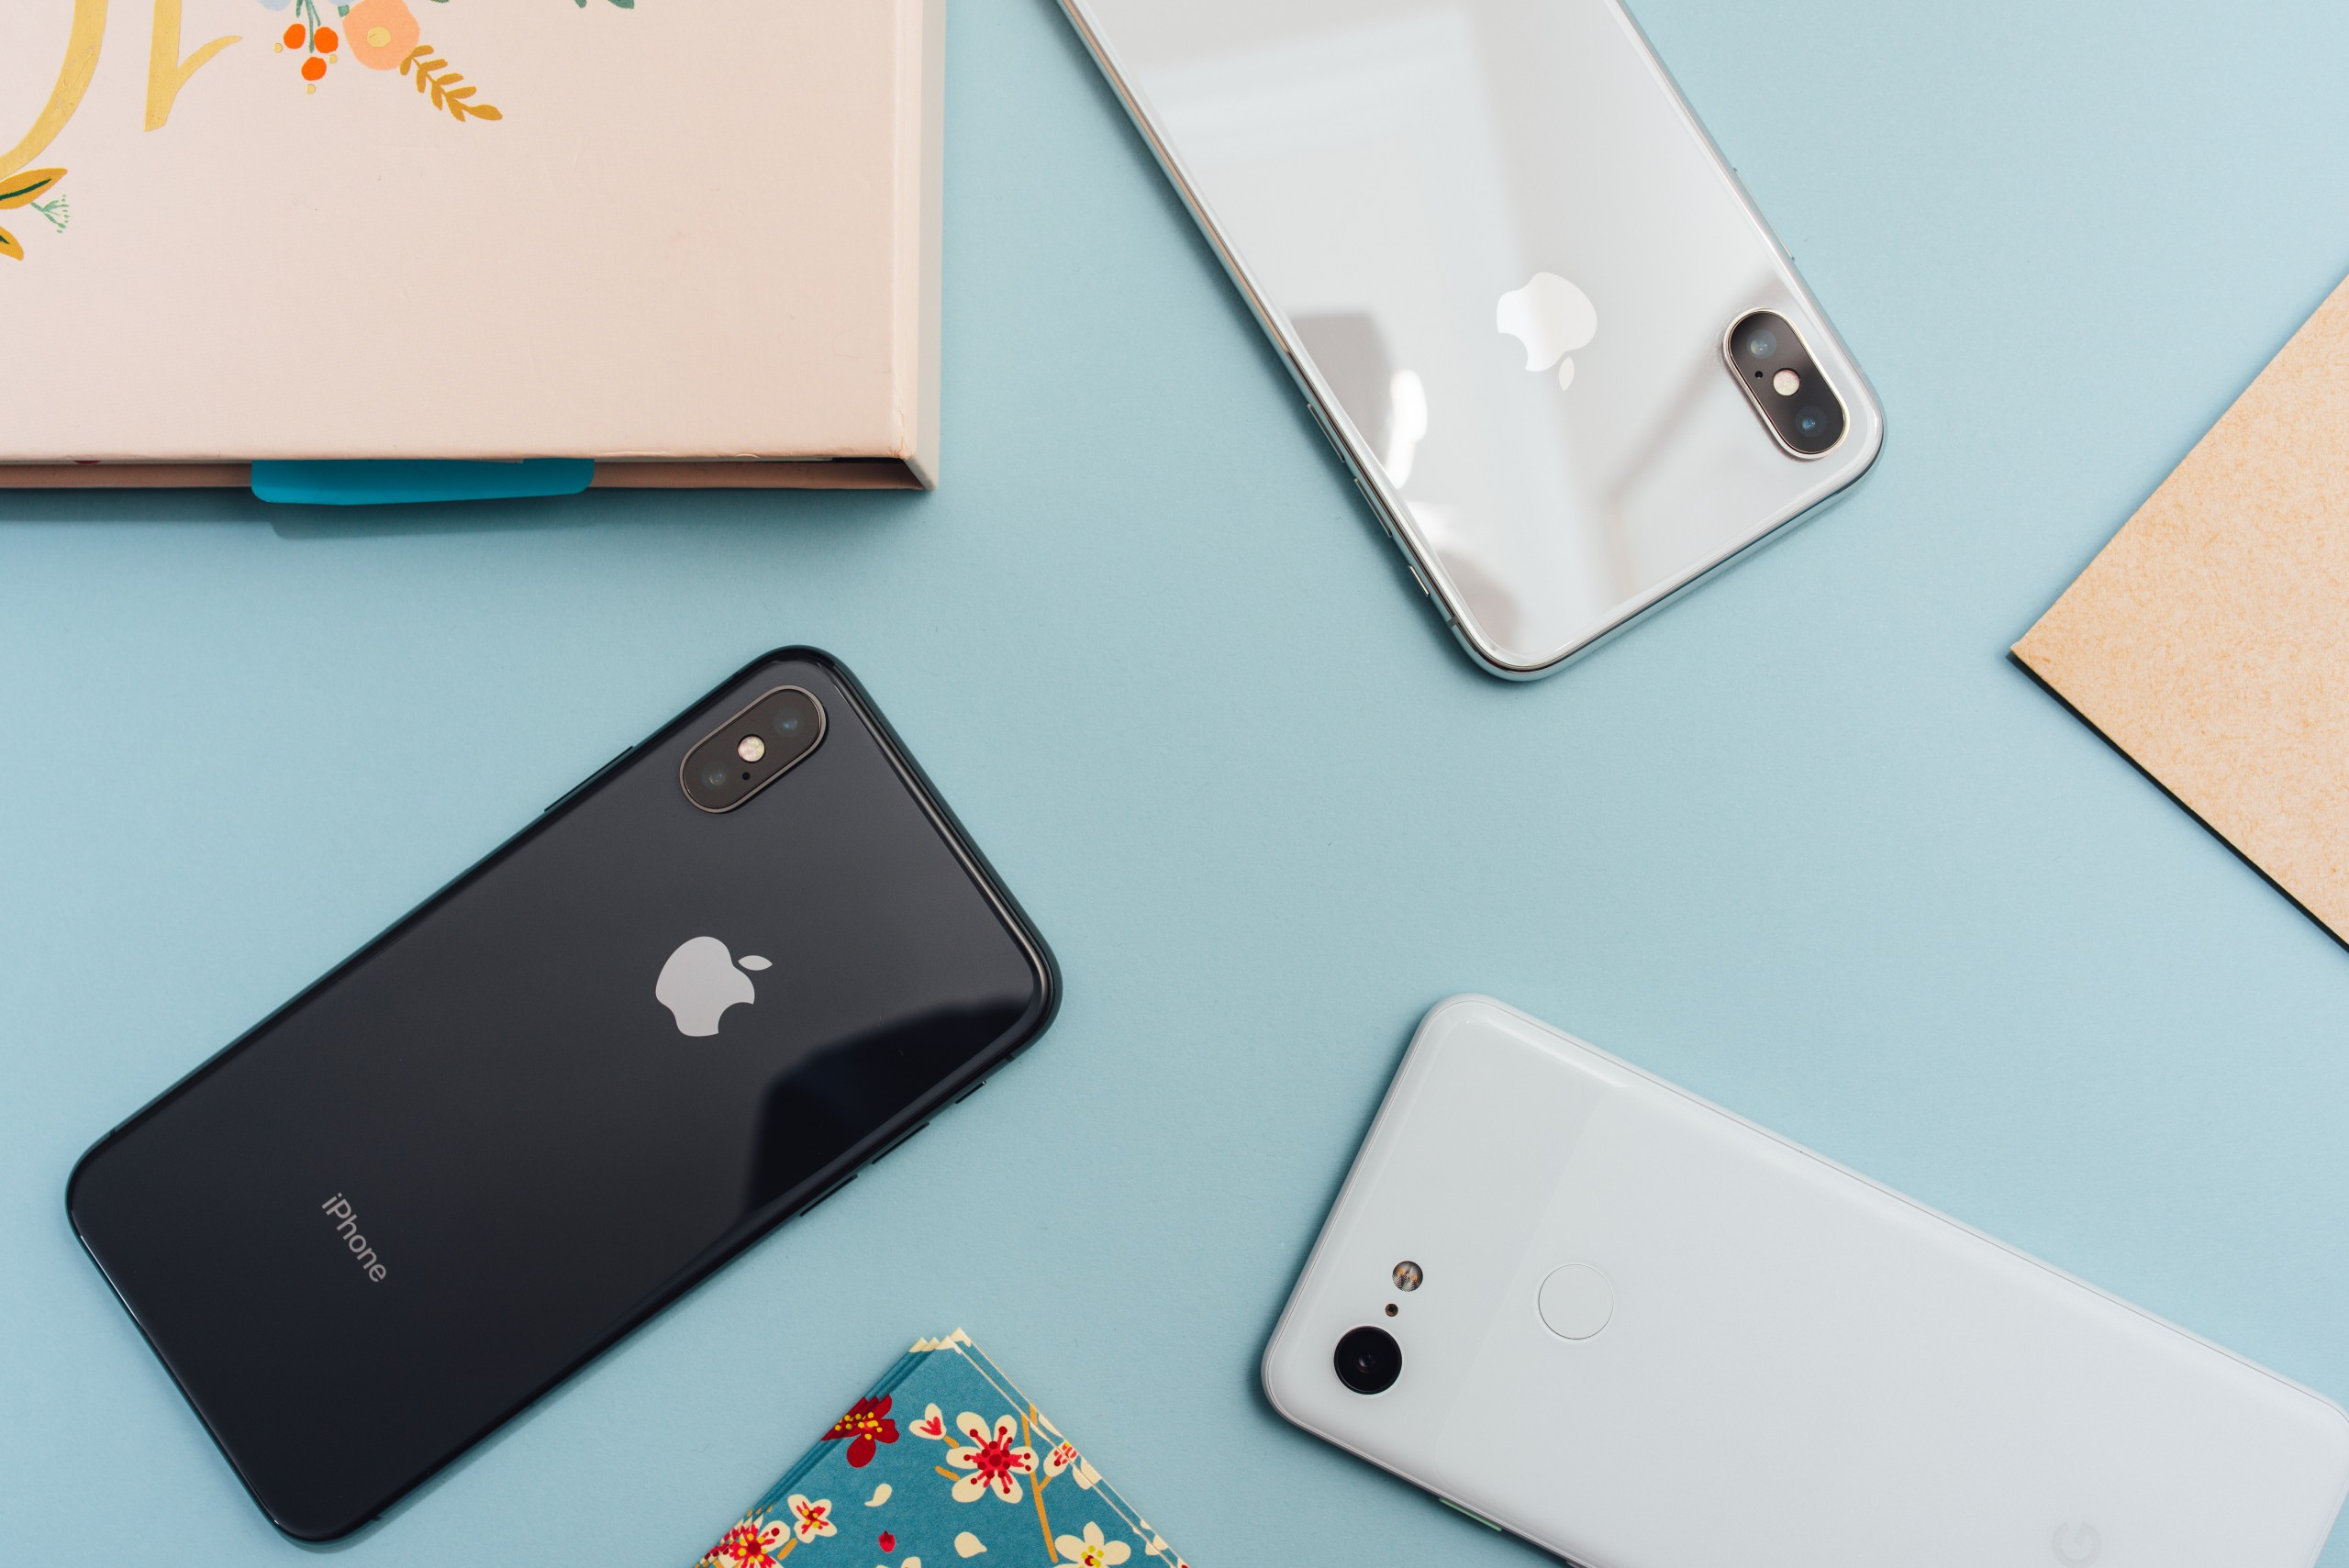 A photo of iPhone X, iPhone XS, and Pixel 3 XL cameras